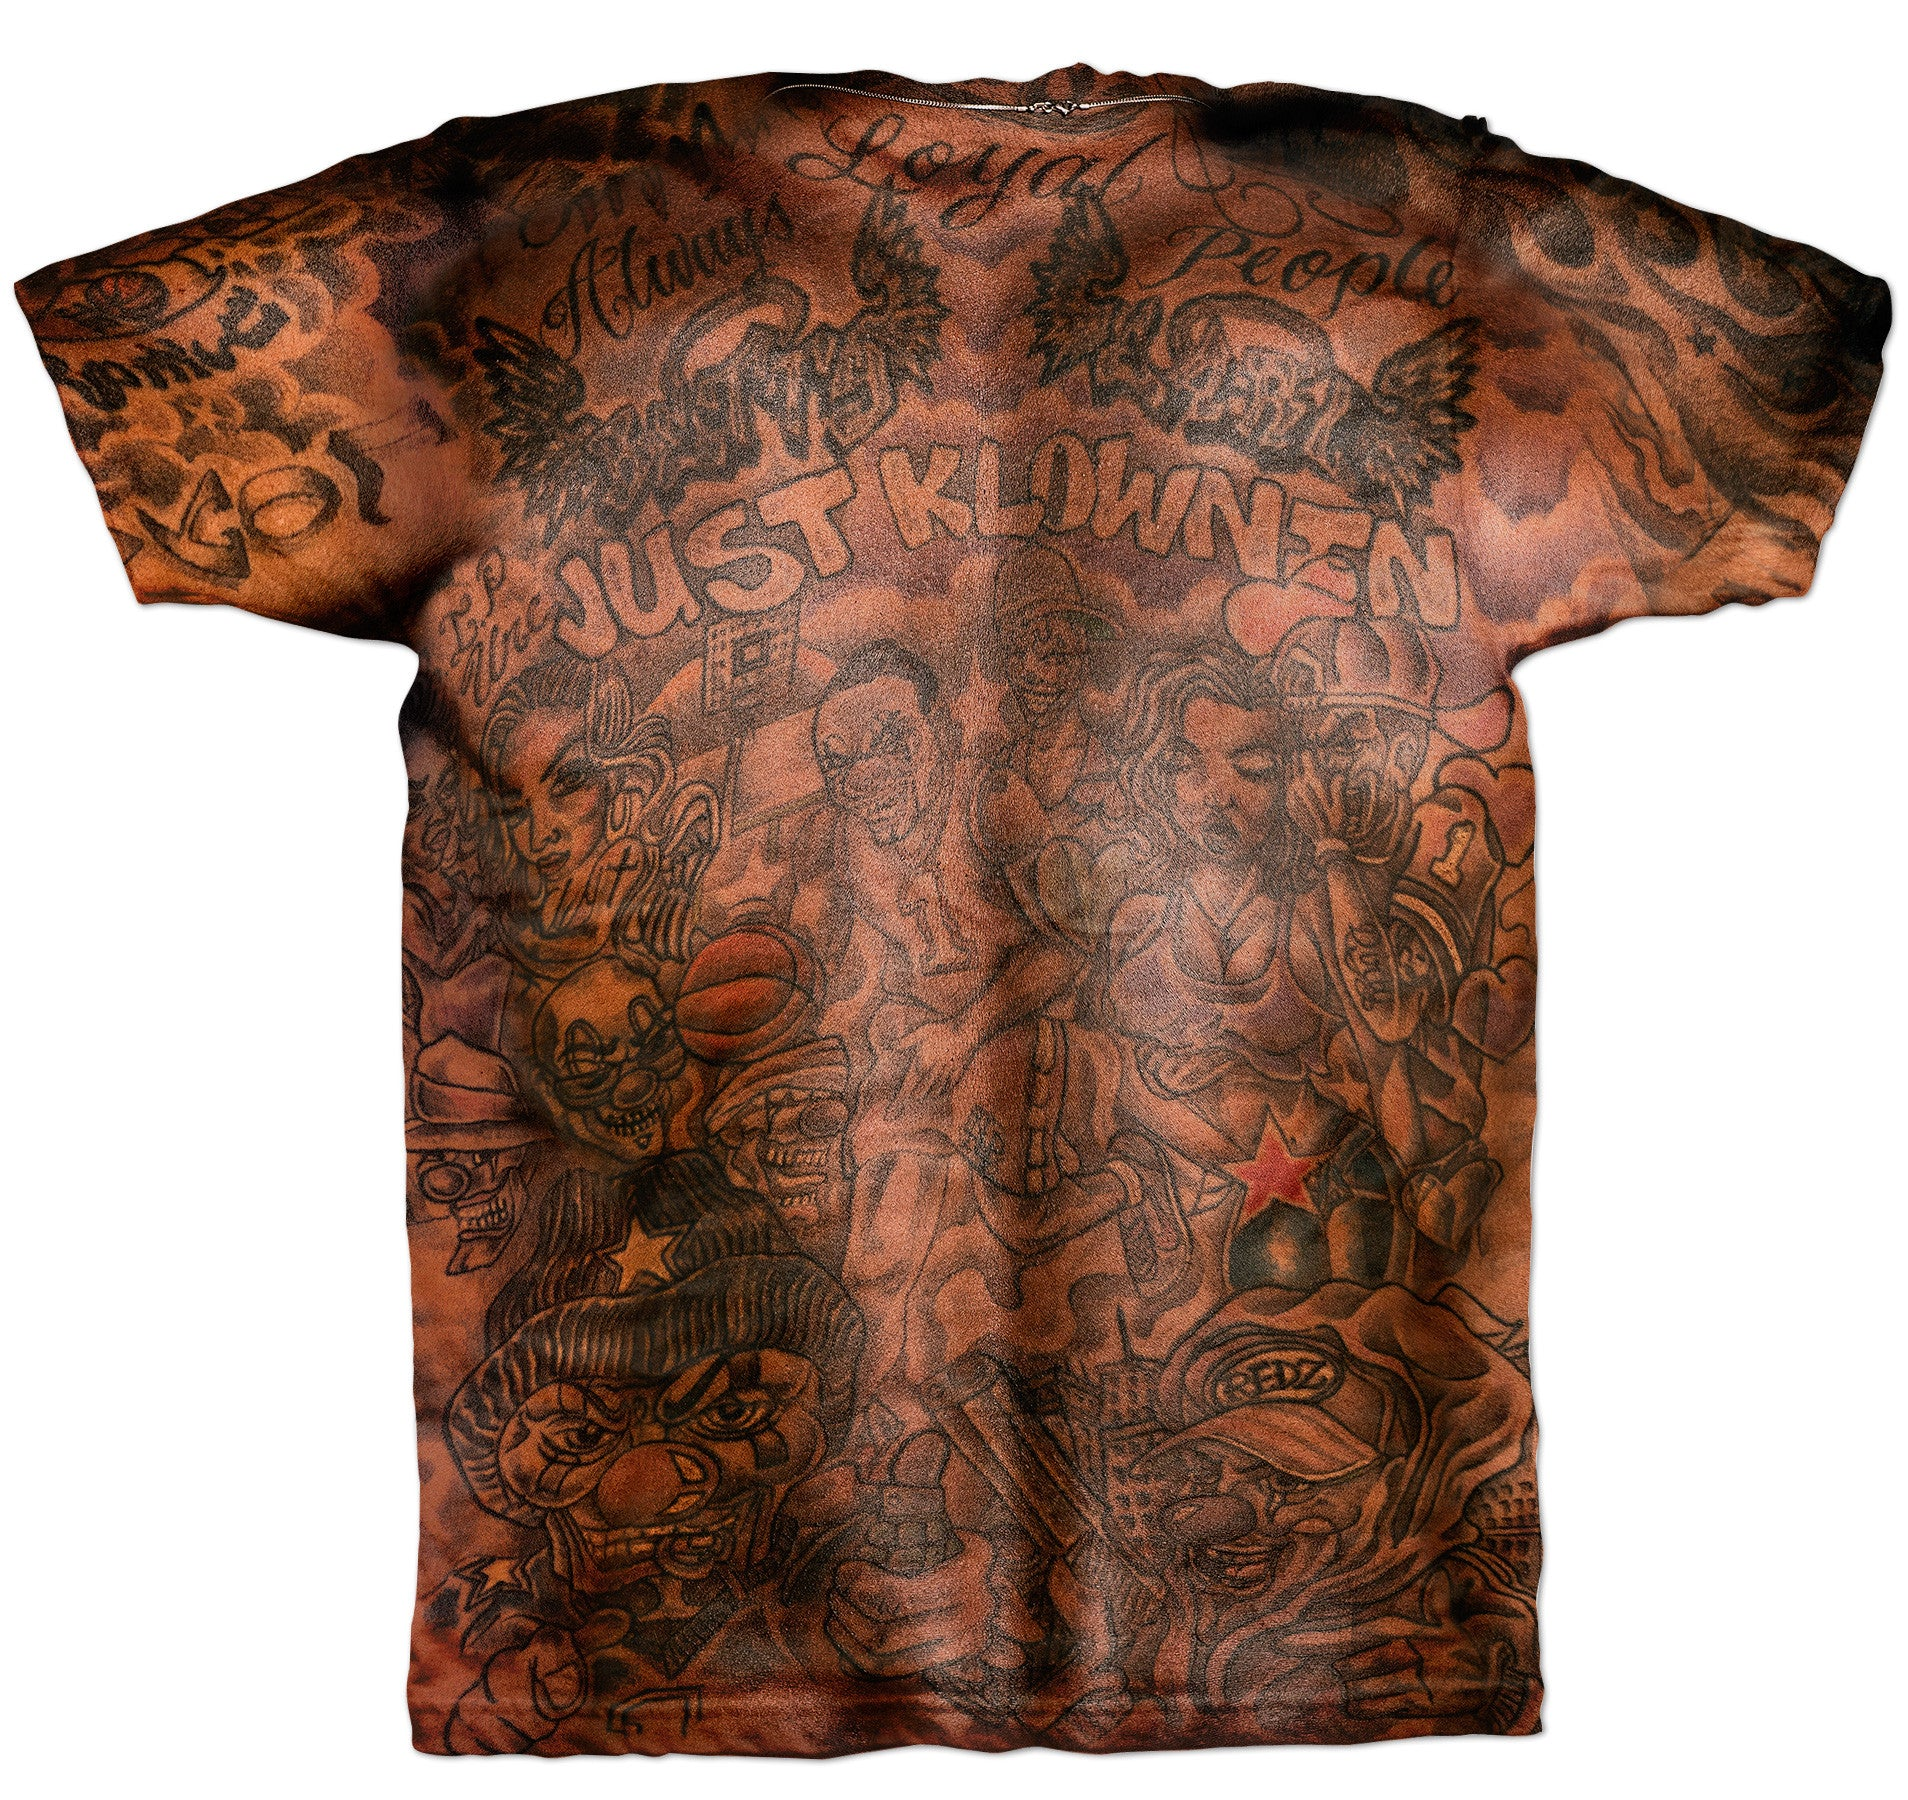 JR Smith Tattoo Shirt from Fresh Brewed Tees